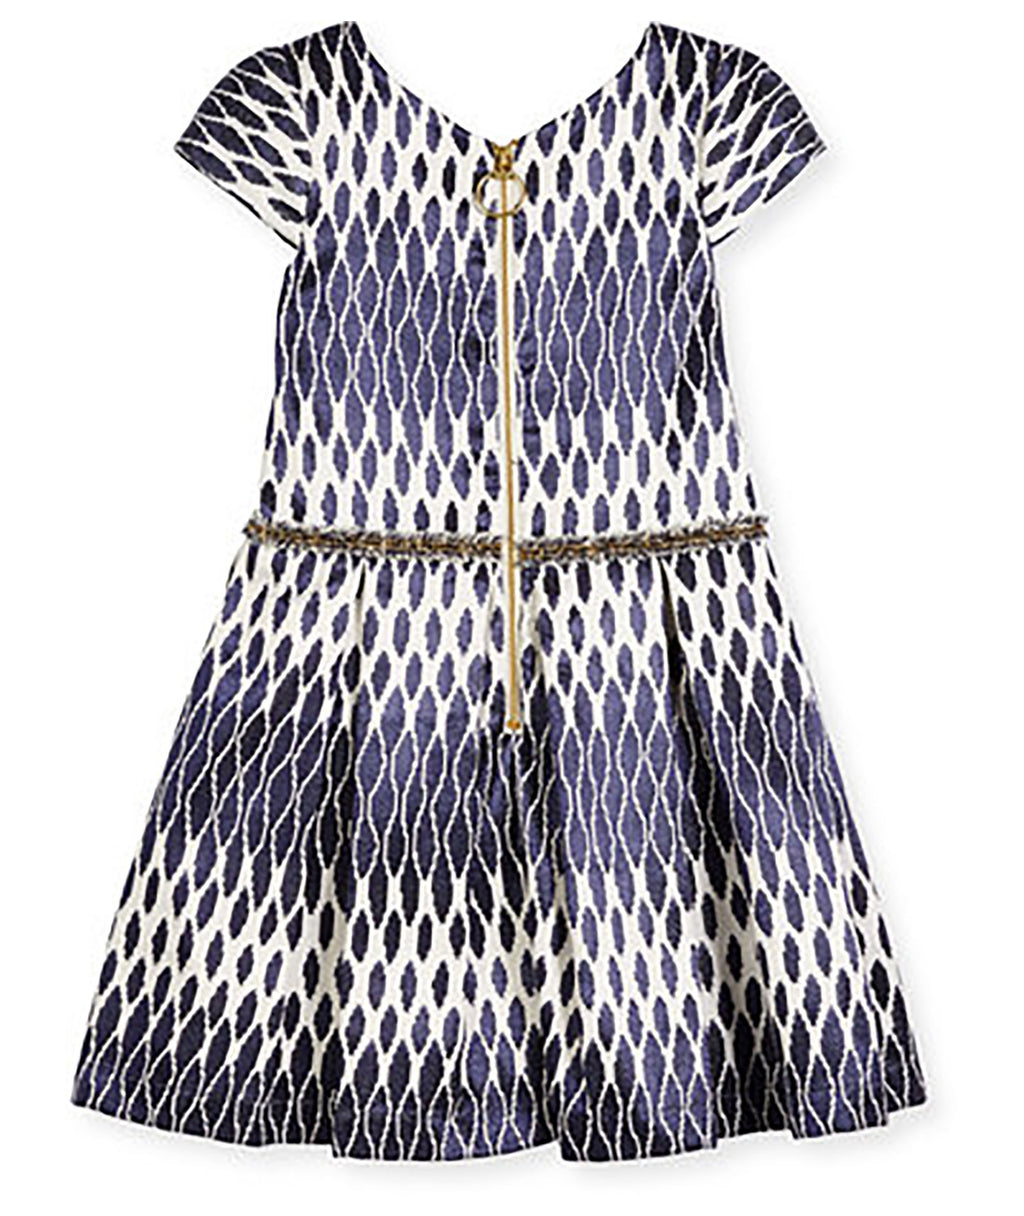 Zoe Ltd. Toddlers Jacquard Navy Party Dress - Frankie's on the Park